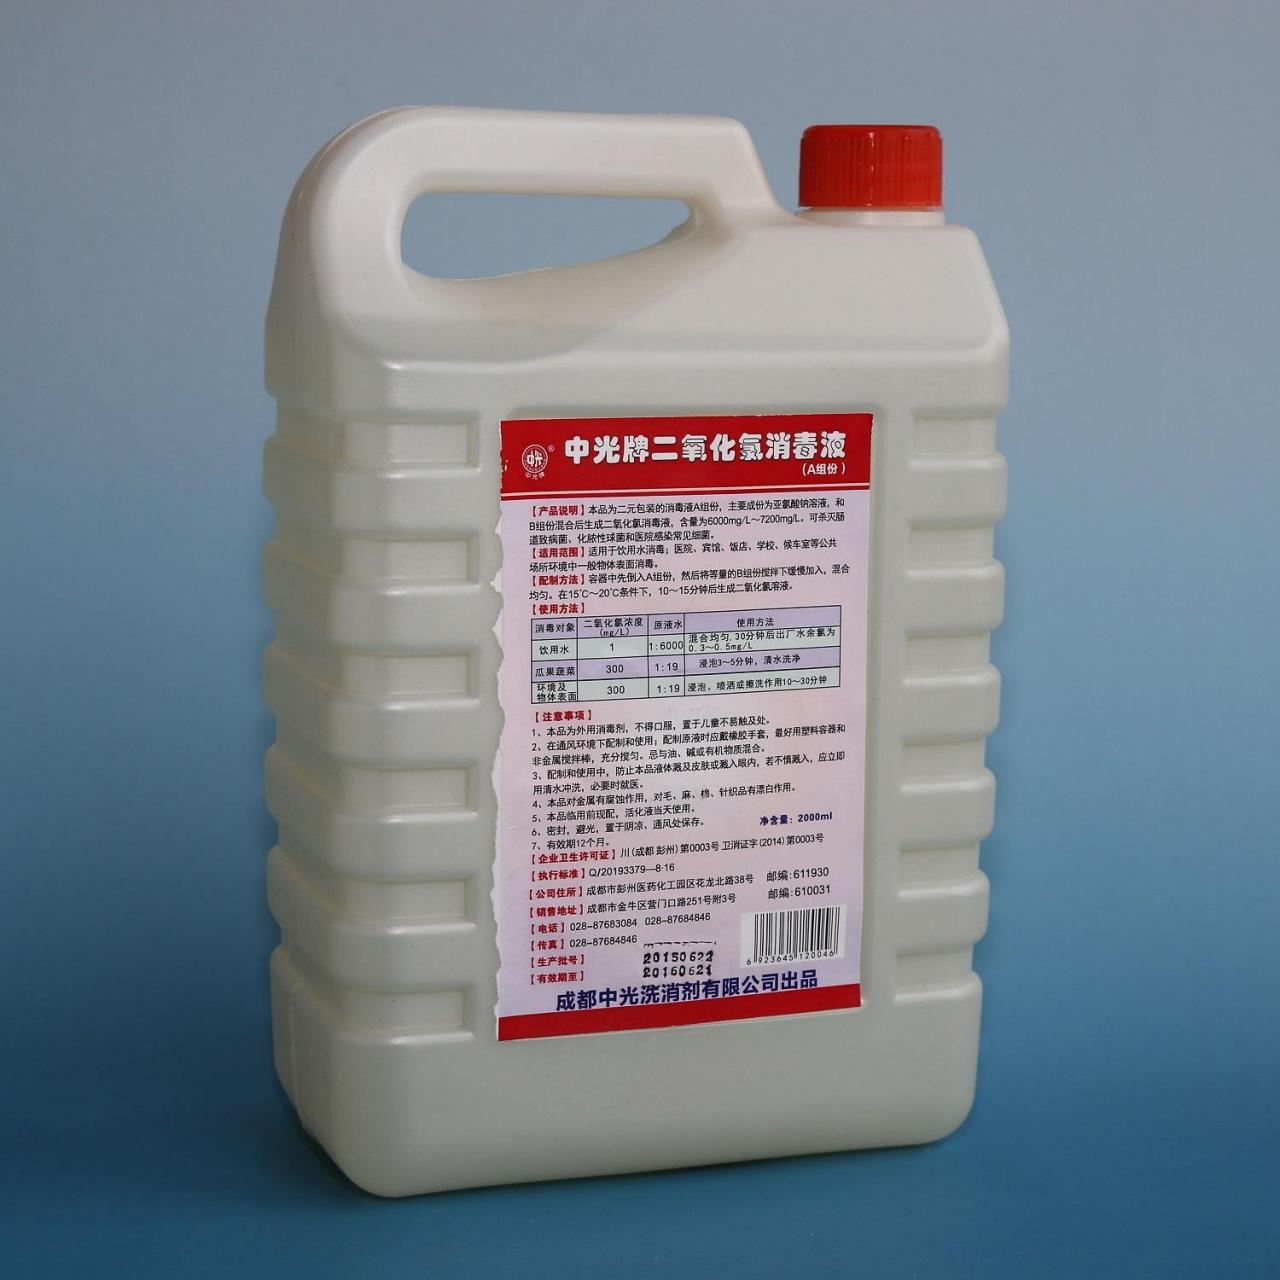 China Sodium Chlorite Solution (Packing A of Chlorine Dioxide Disinfectant Liquid) wholesale